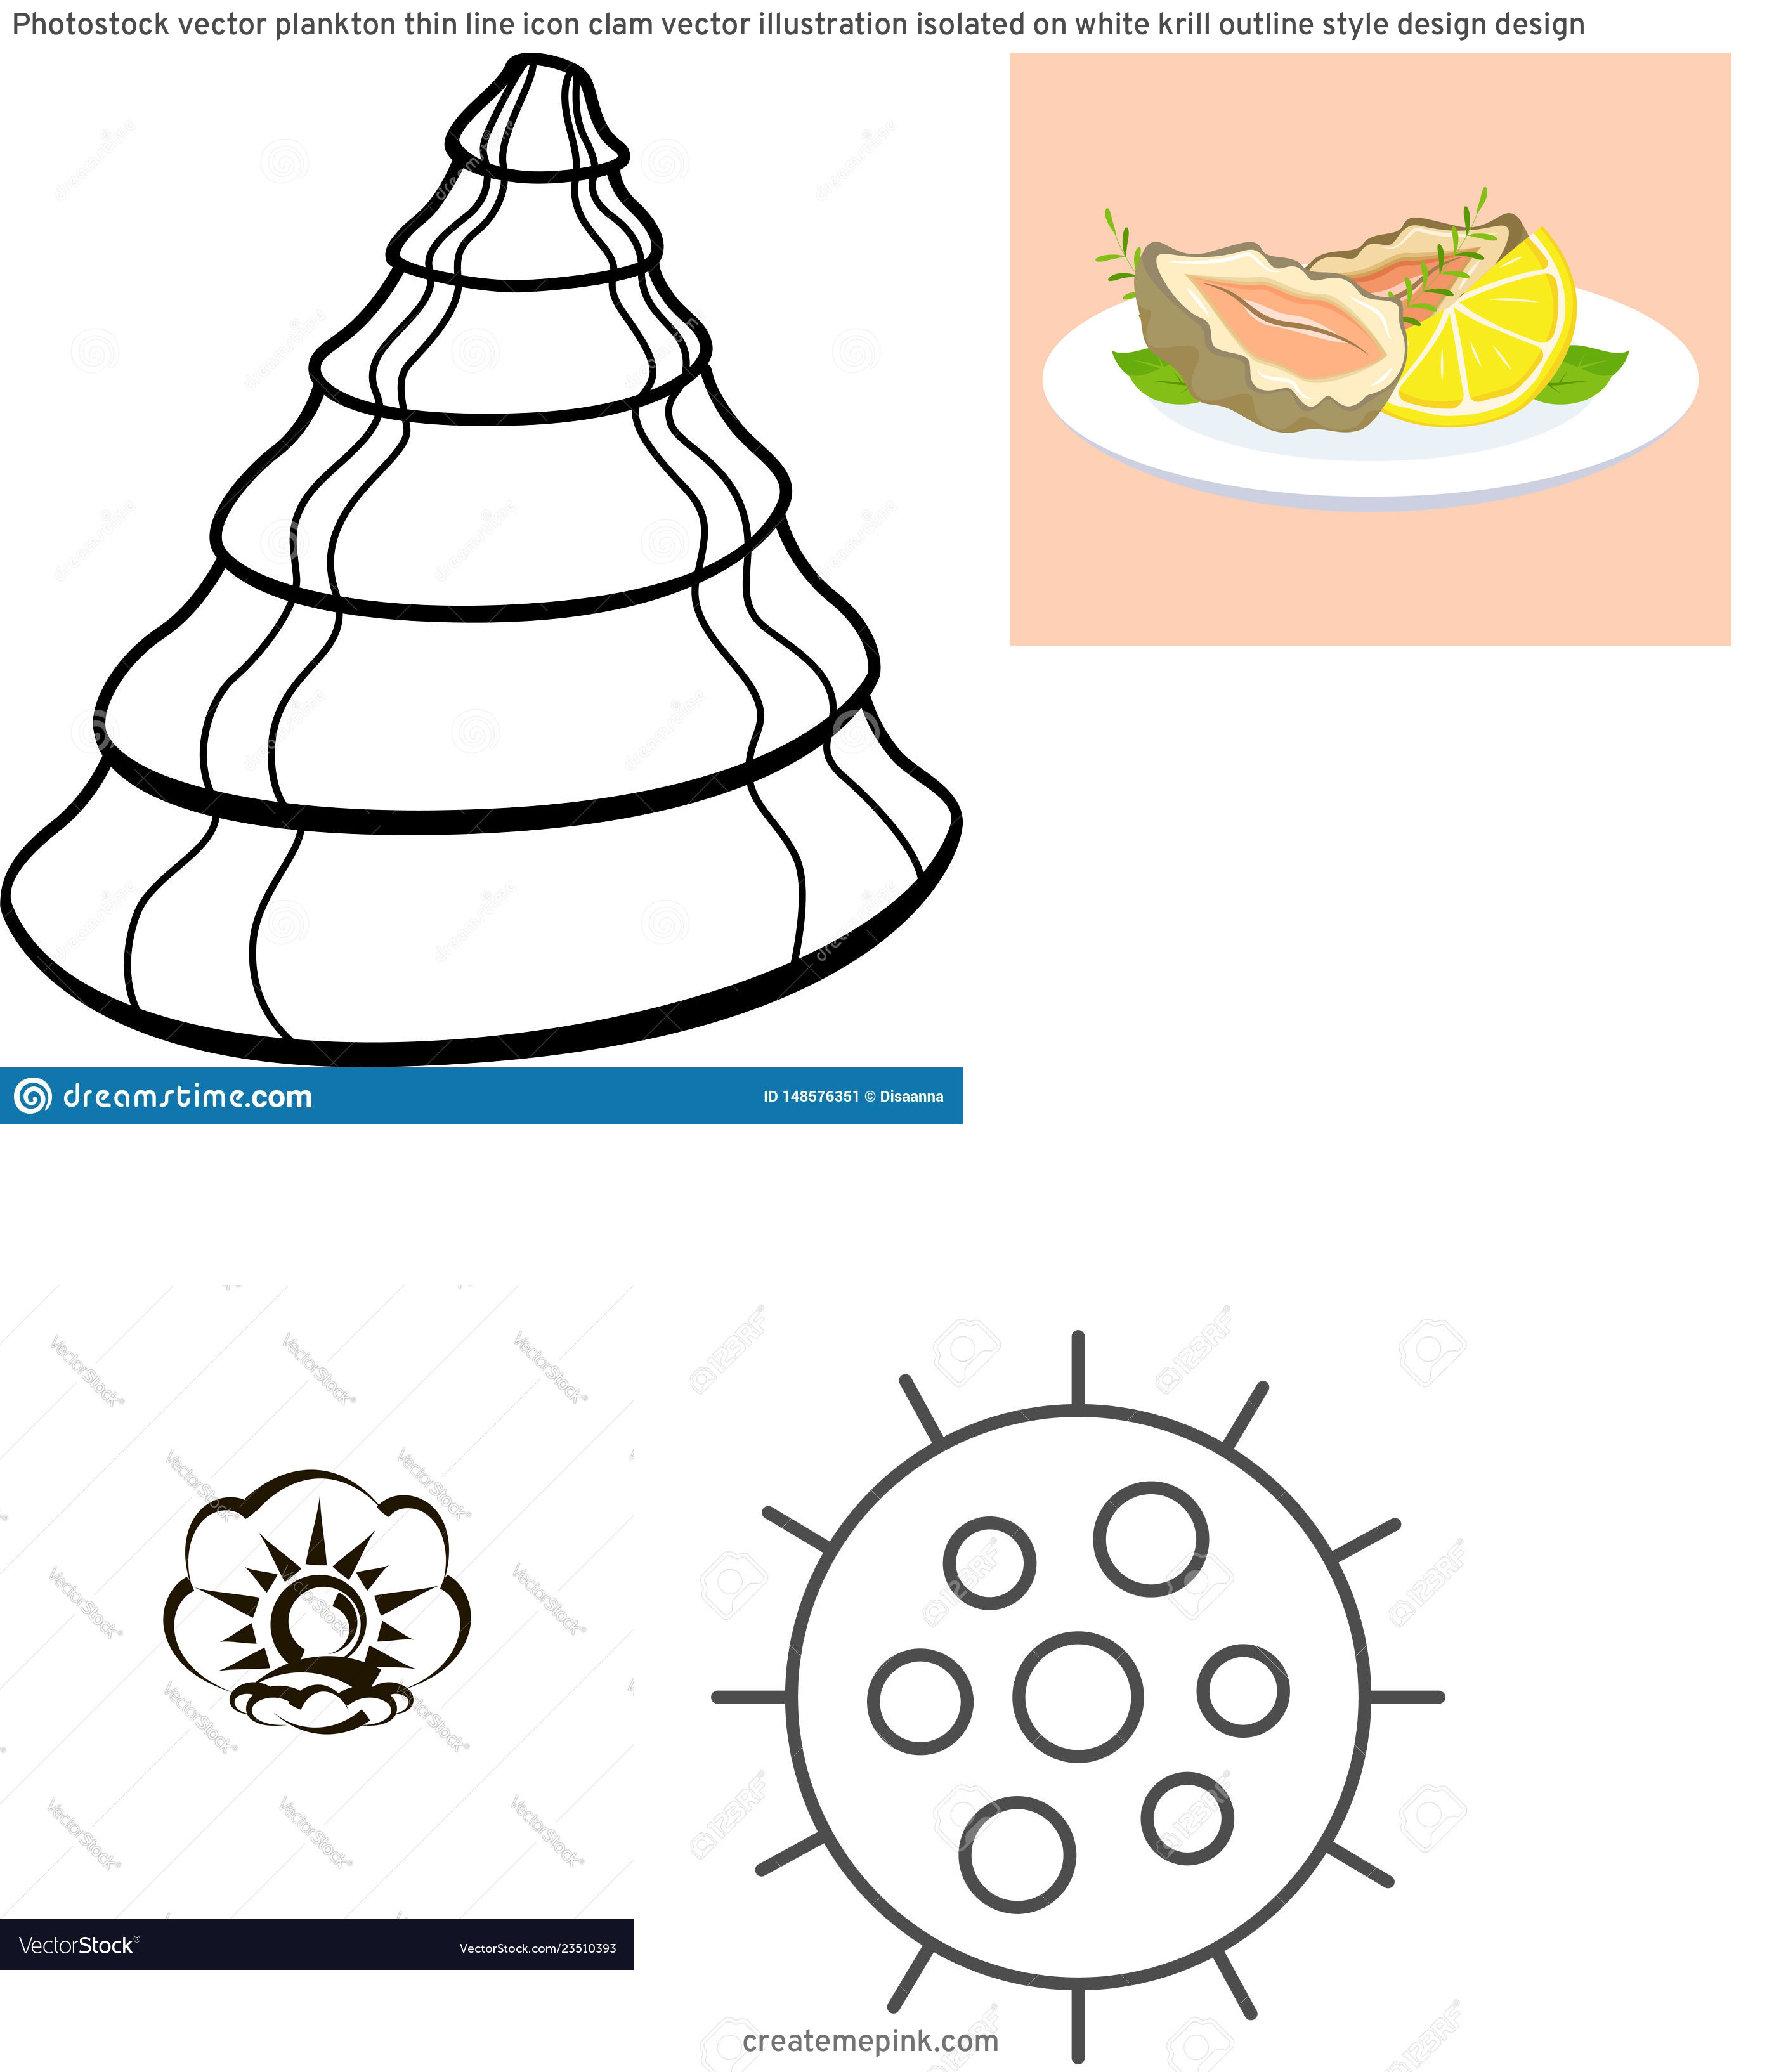 Clam Vector: Photostock Vector Plankton Thin Line Icon Clam Vector Illustration Isolated On White Krill Outline Style Design Design